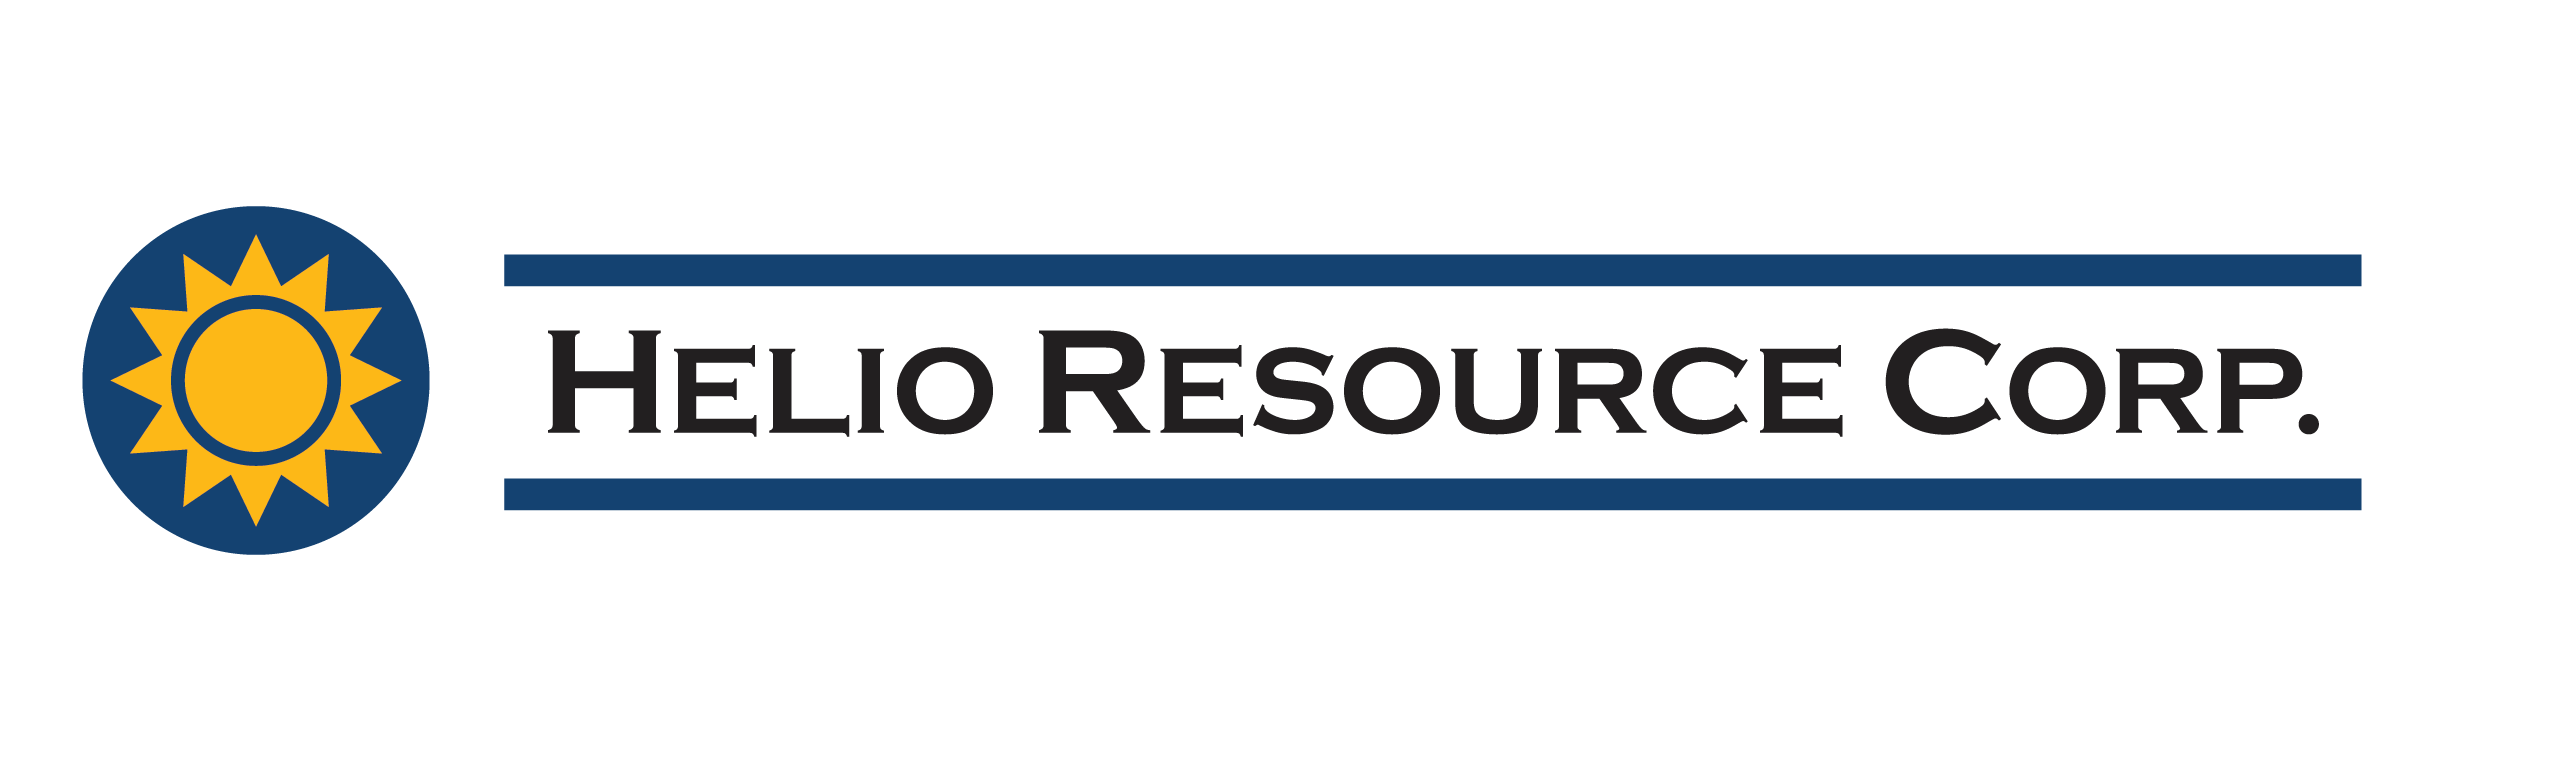 Helio Resource Will Change Name to Winshear Gold Corp.